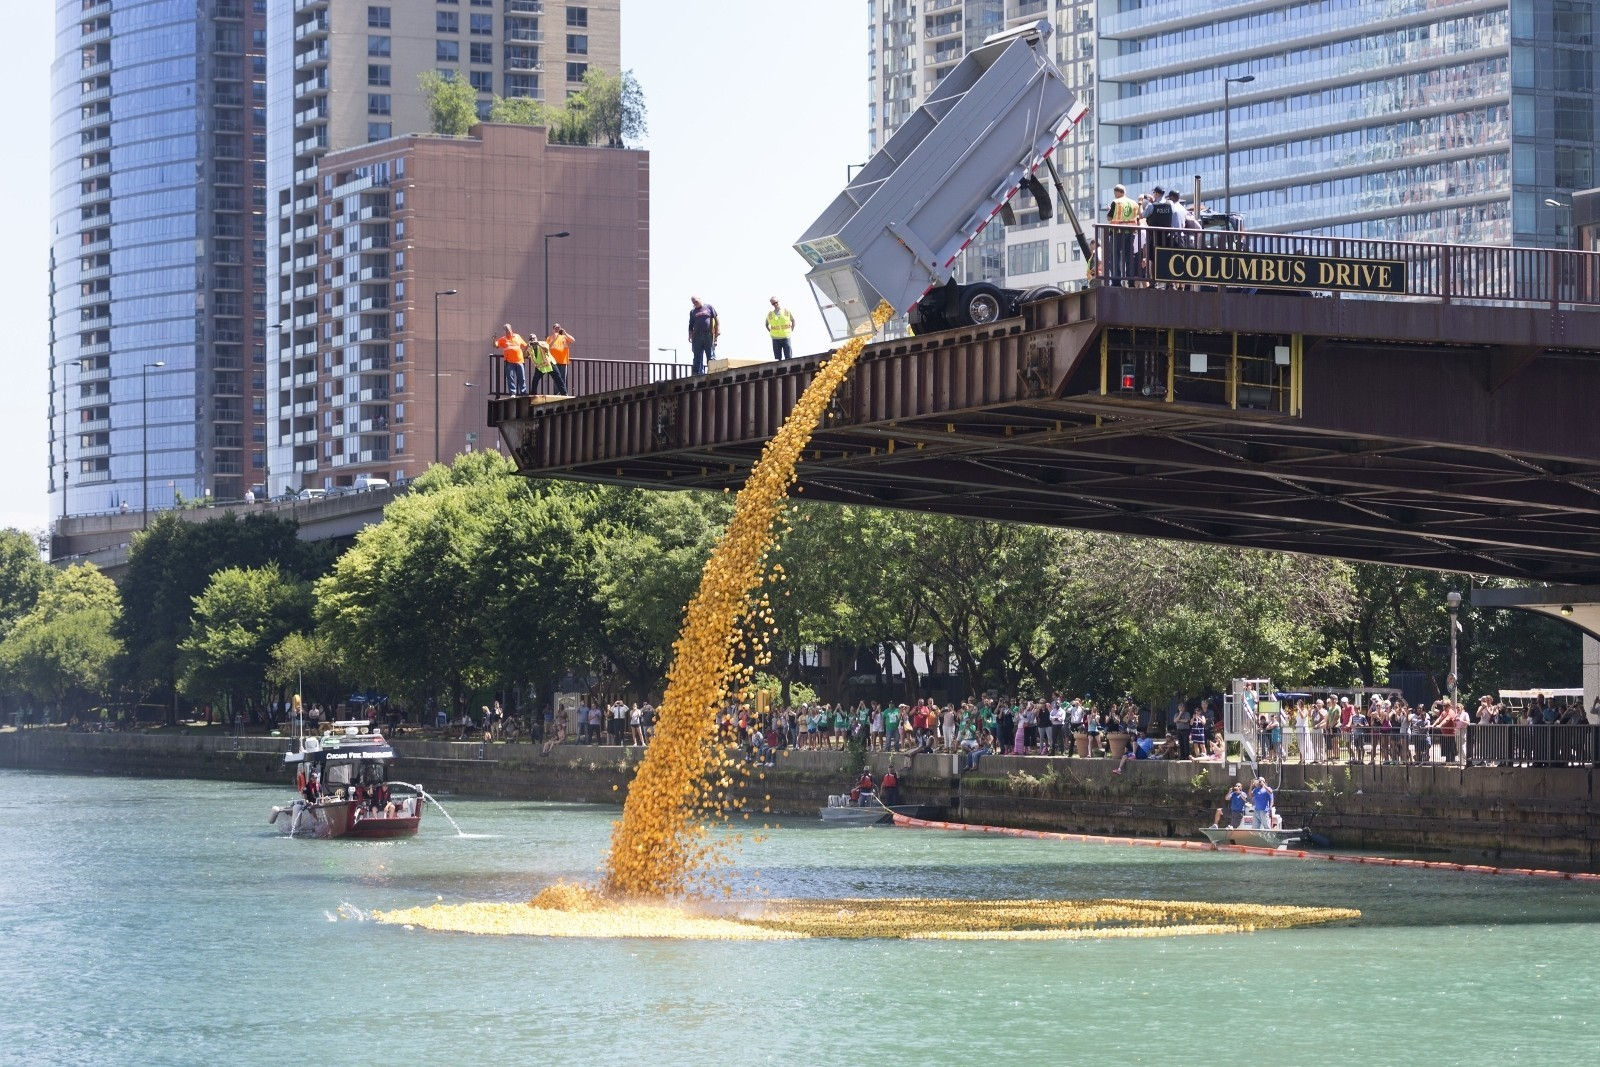 Watch More Than 60 000 Rubber Duckies Take Over The